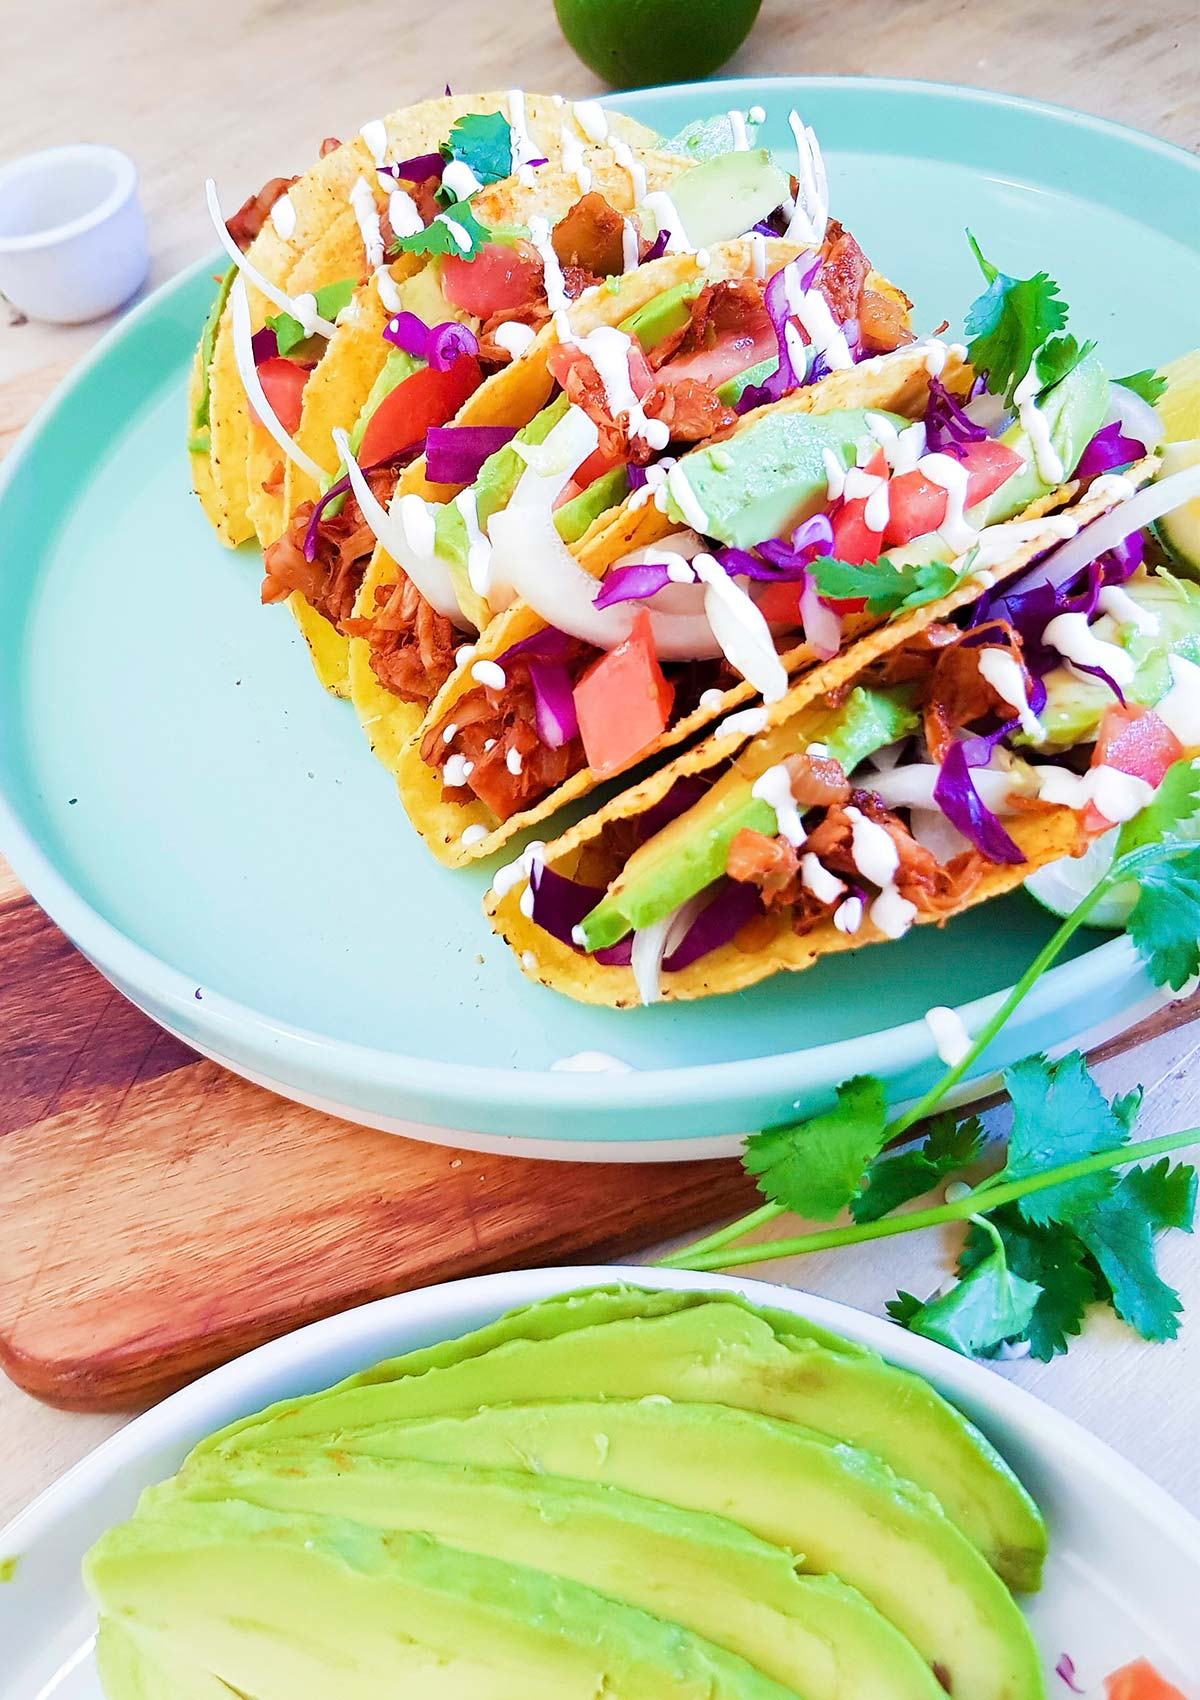 Hard shell tacos filled with jackfruit, avocado,and cabbage.